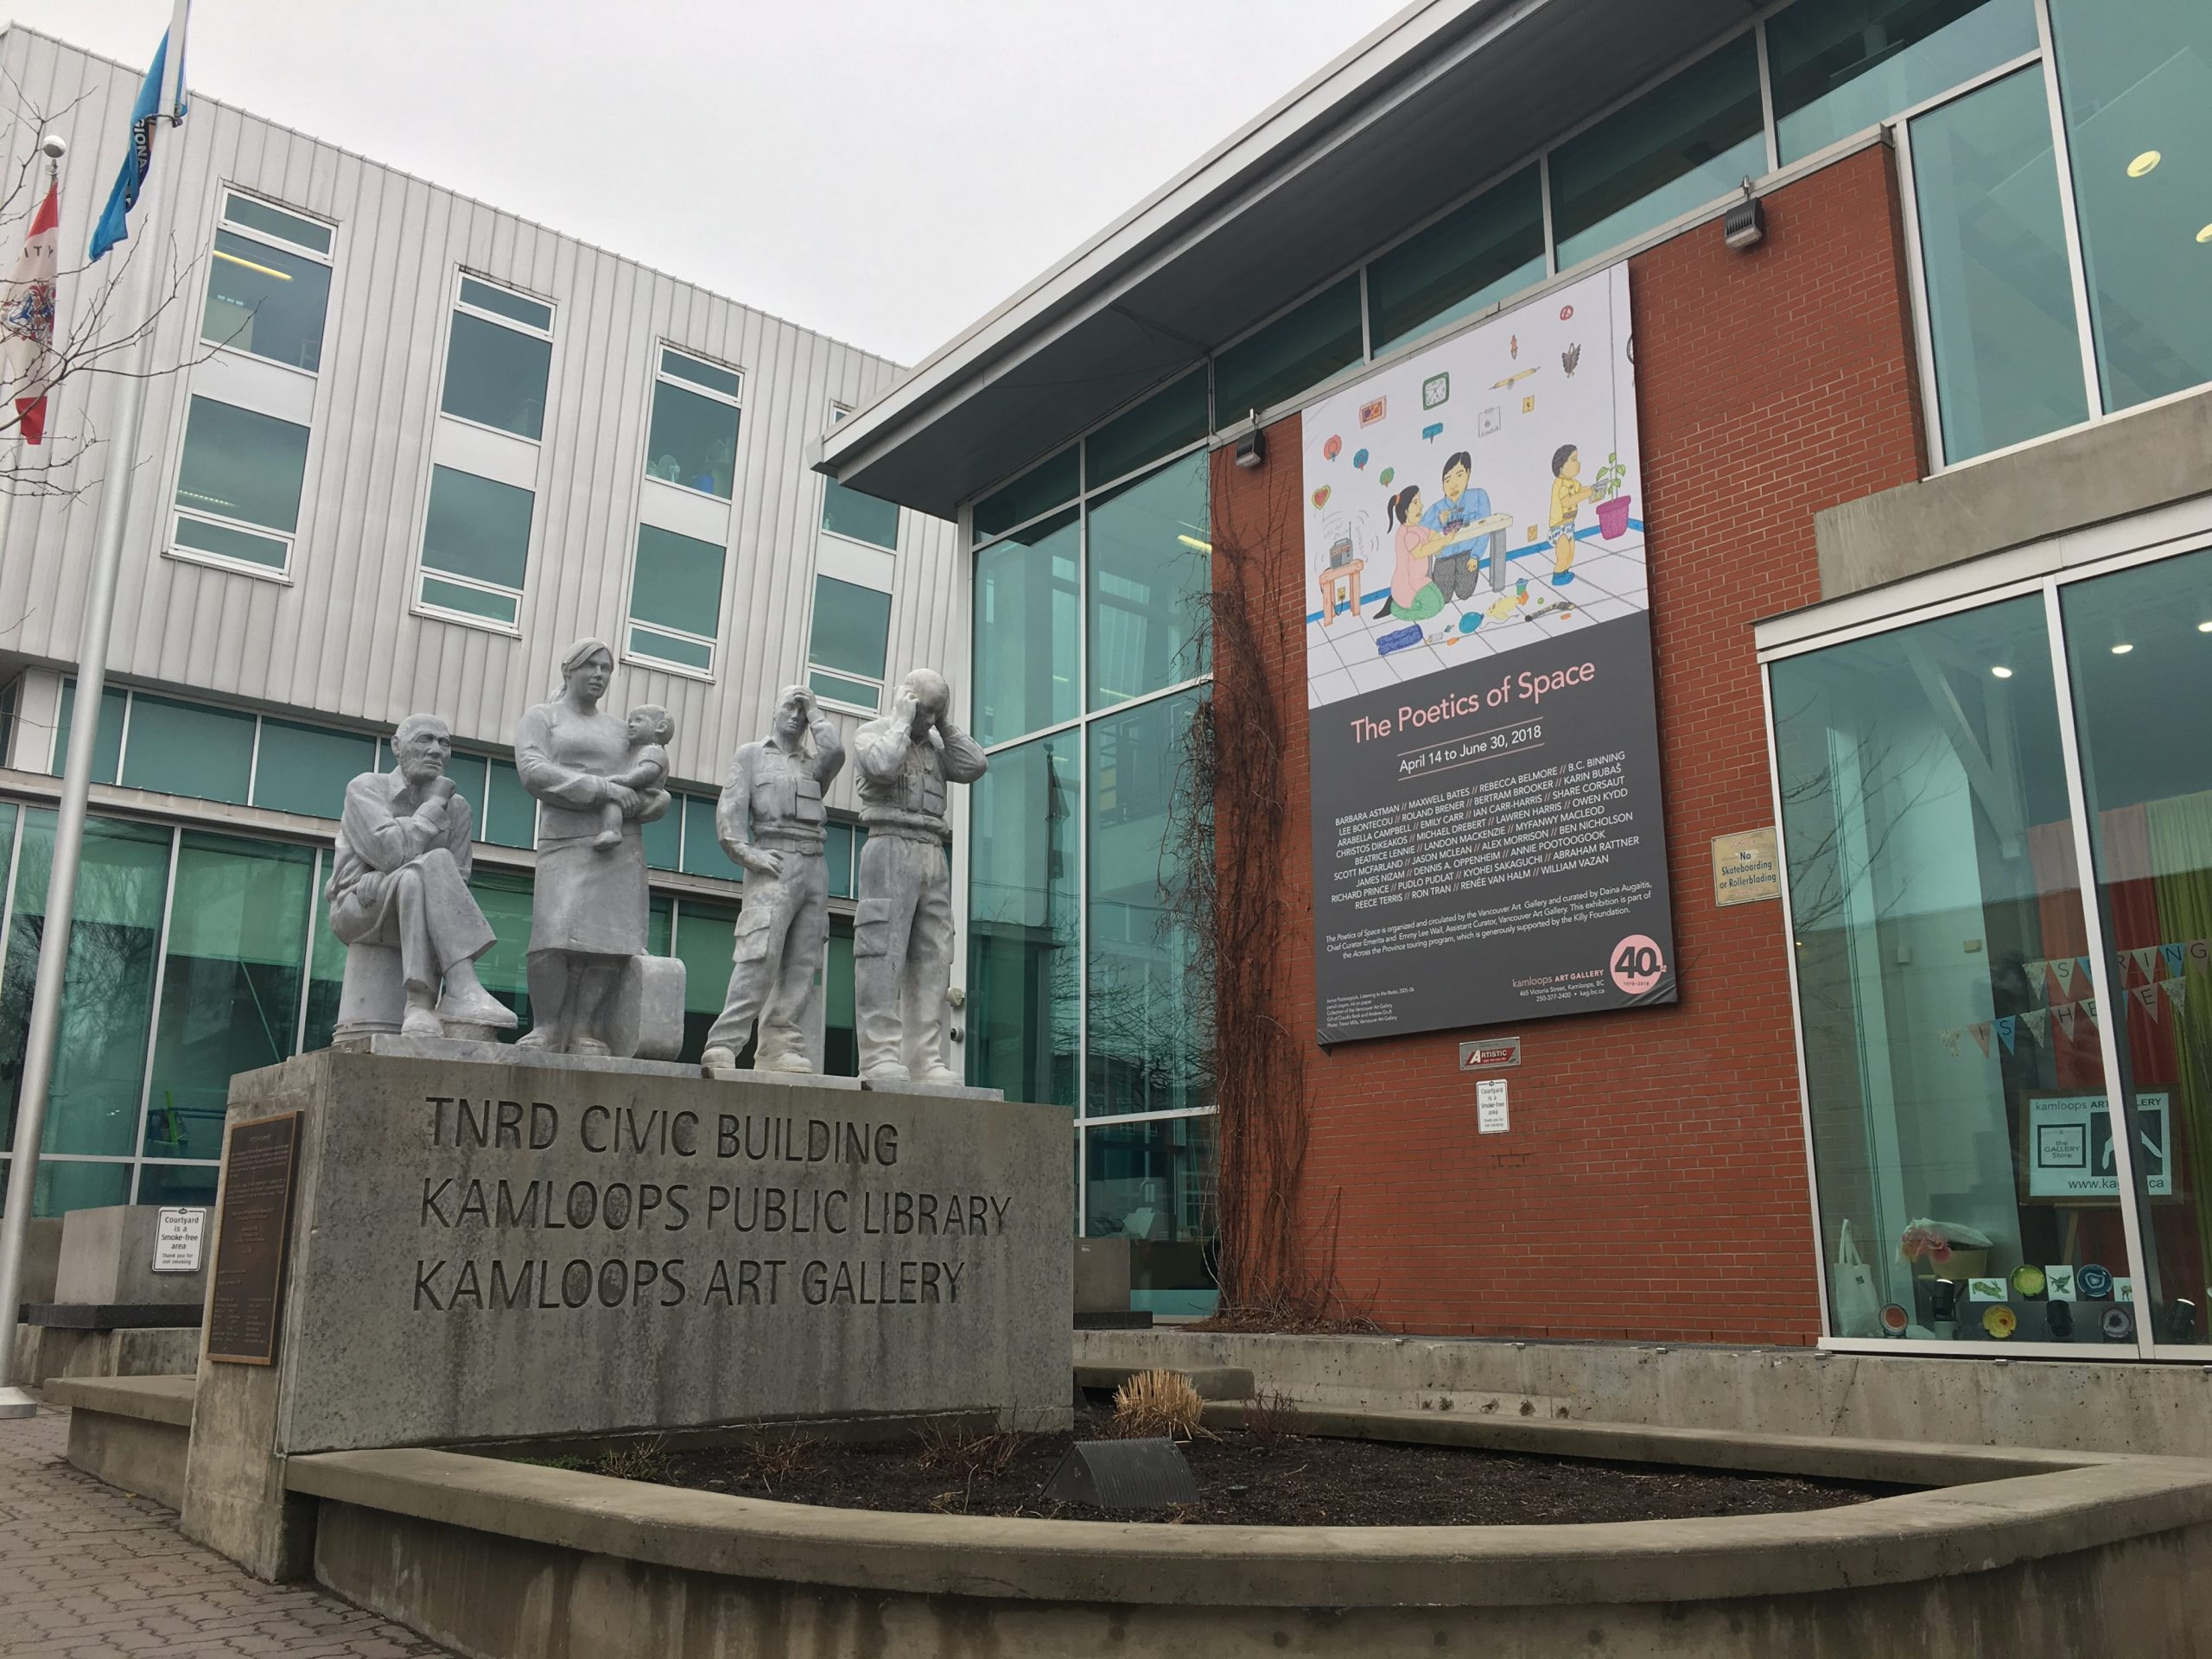 Downtown Kamloops Library re-opens today after 6 week renovation project